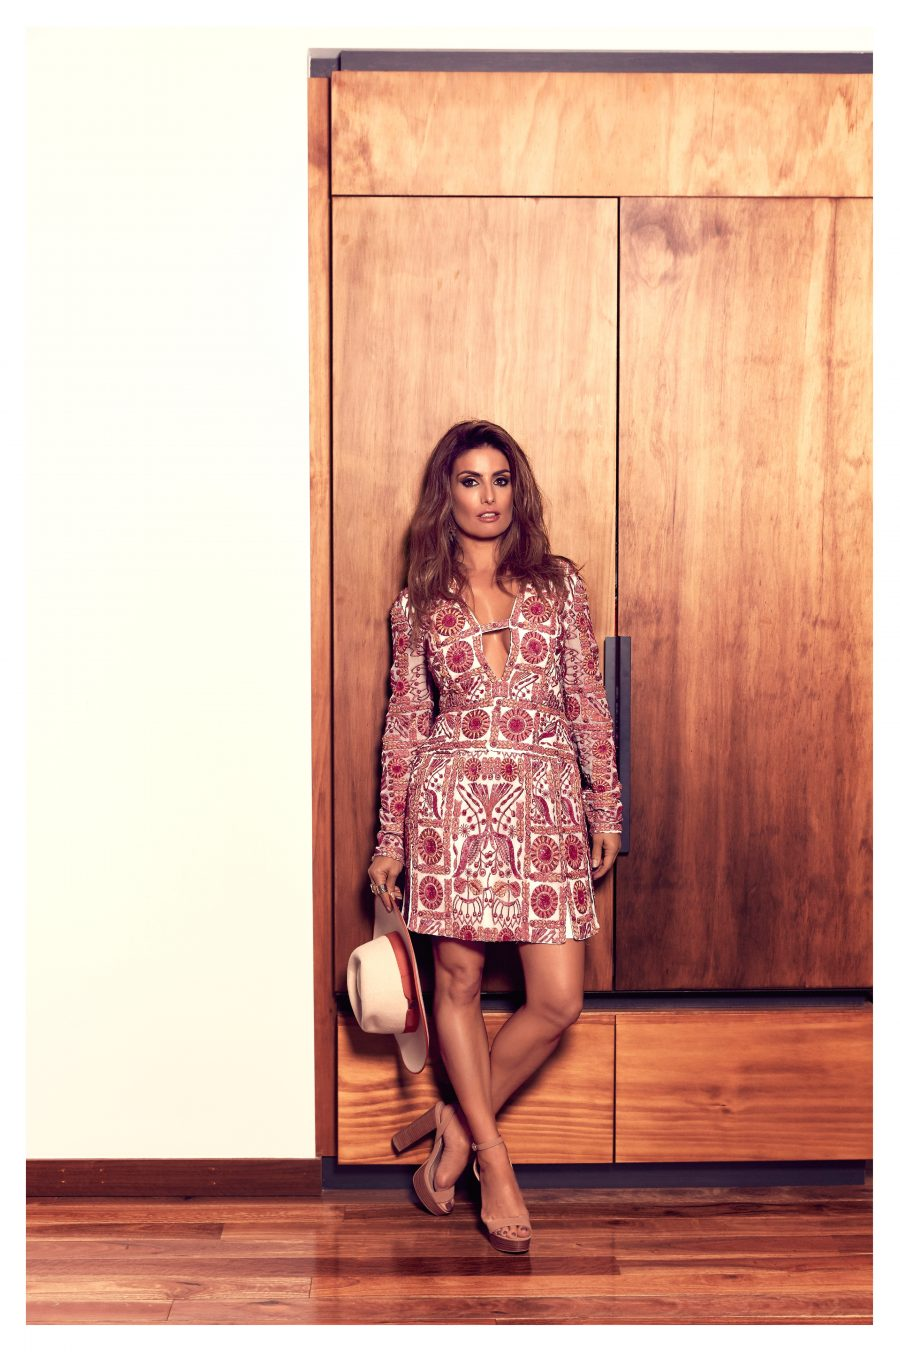 See Need Want Ada Nicodemou Fashion Feature 11